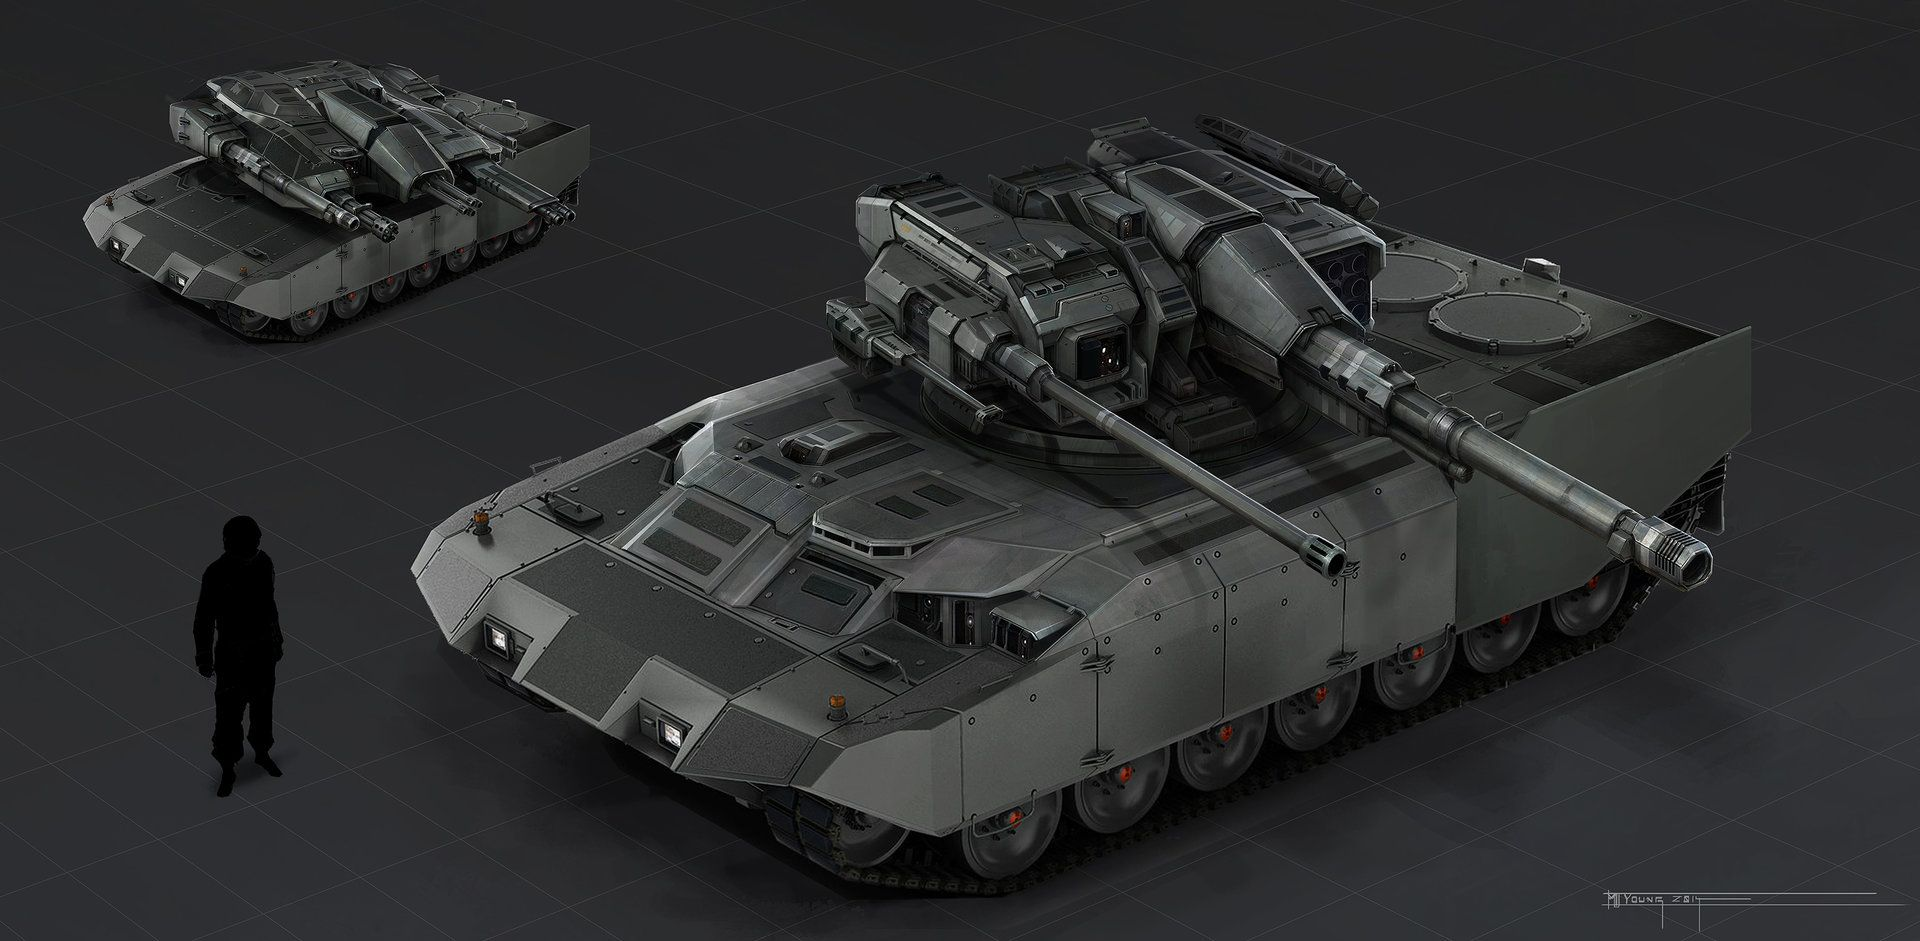 Artstation Sentinel Tank Concept Muyoung Kim Mbt Tread Pinterest Vehicle Sci Fi And